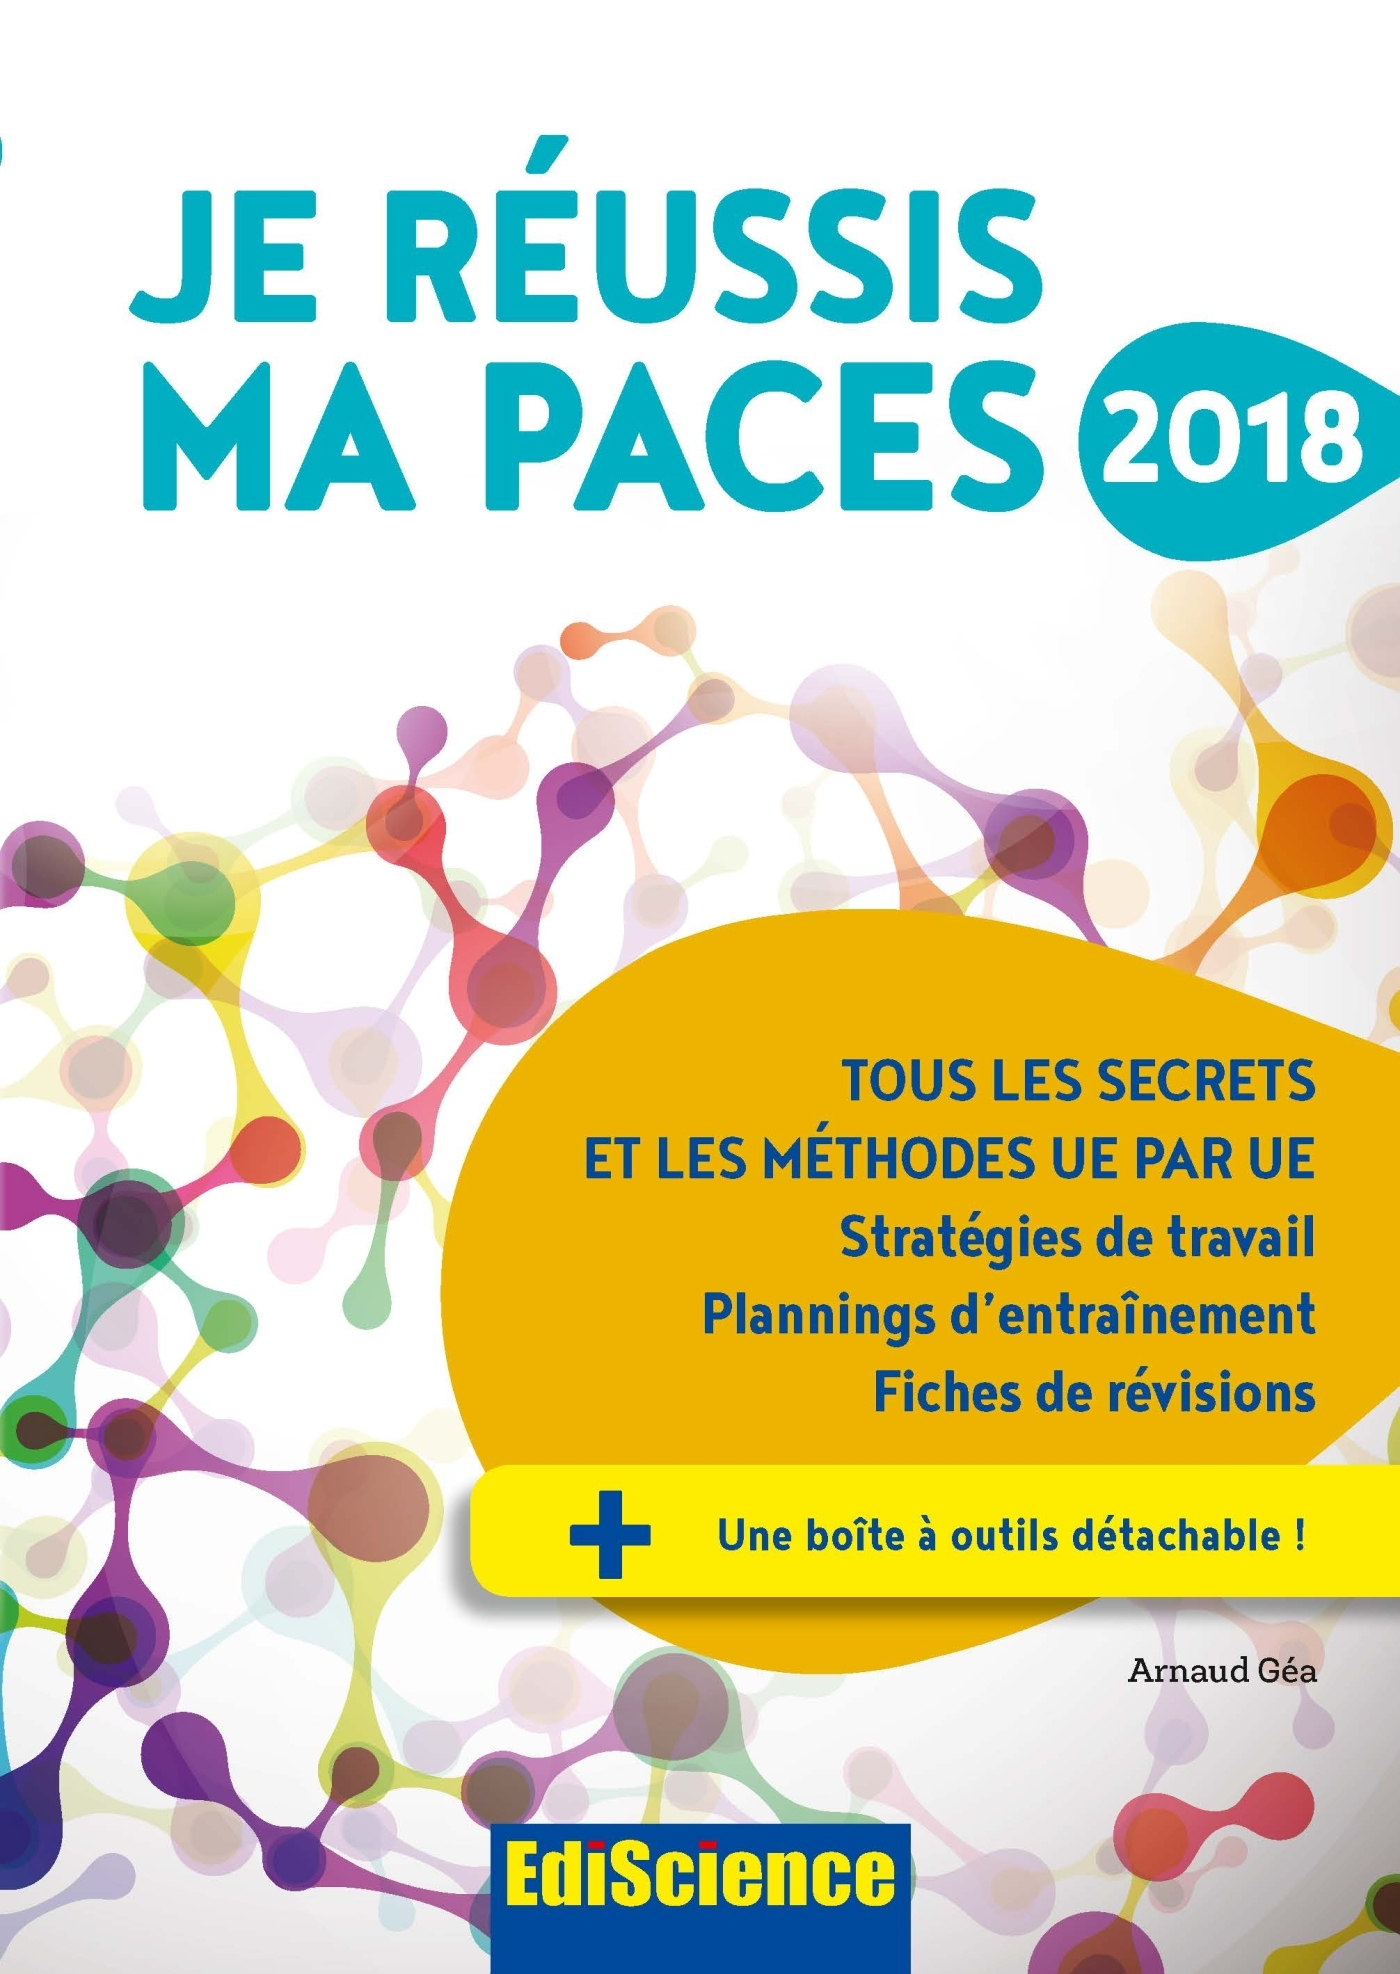 JE REUSSIS MA PACES - EDITION 2018